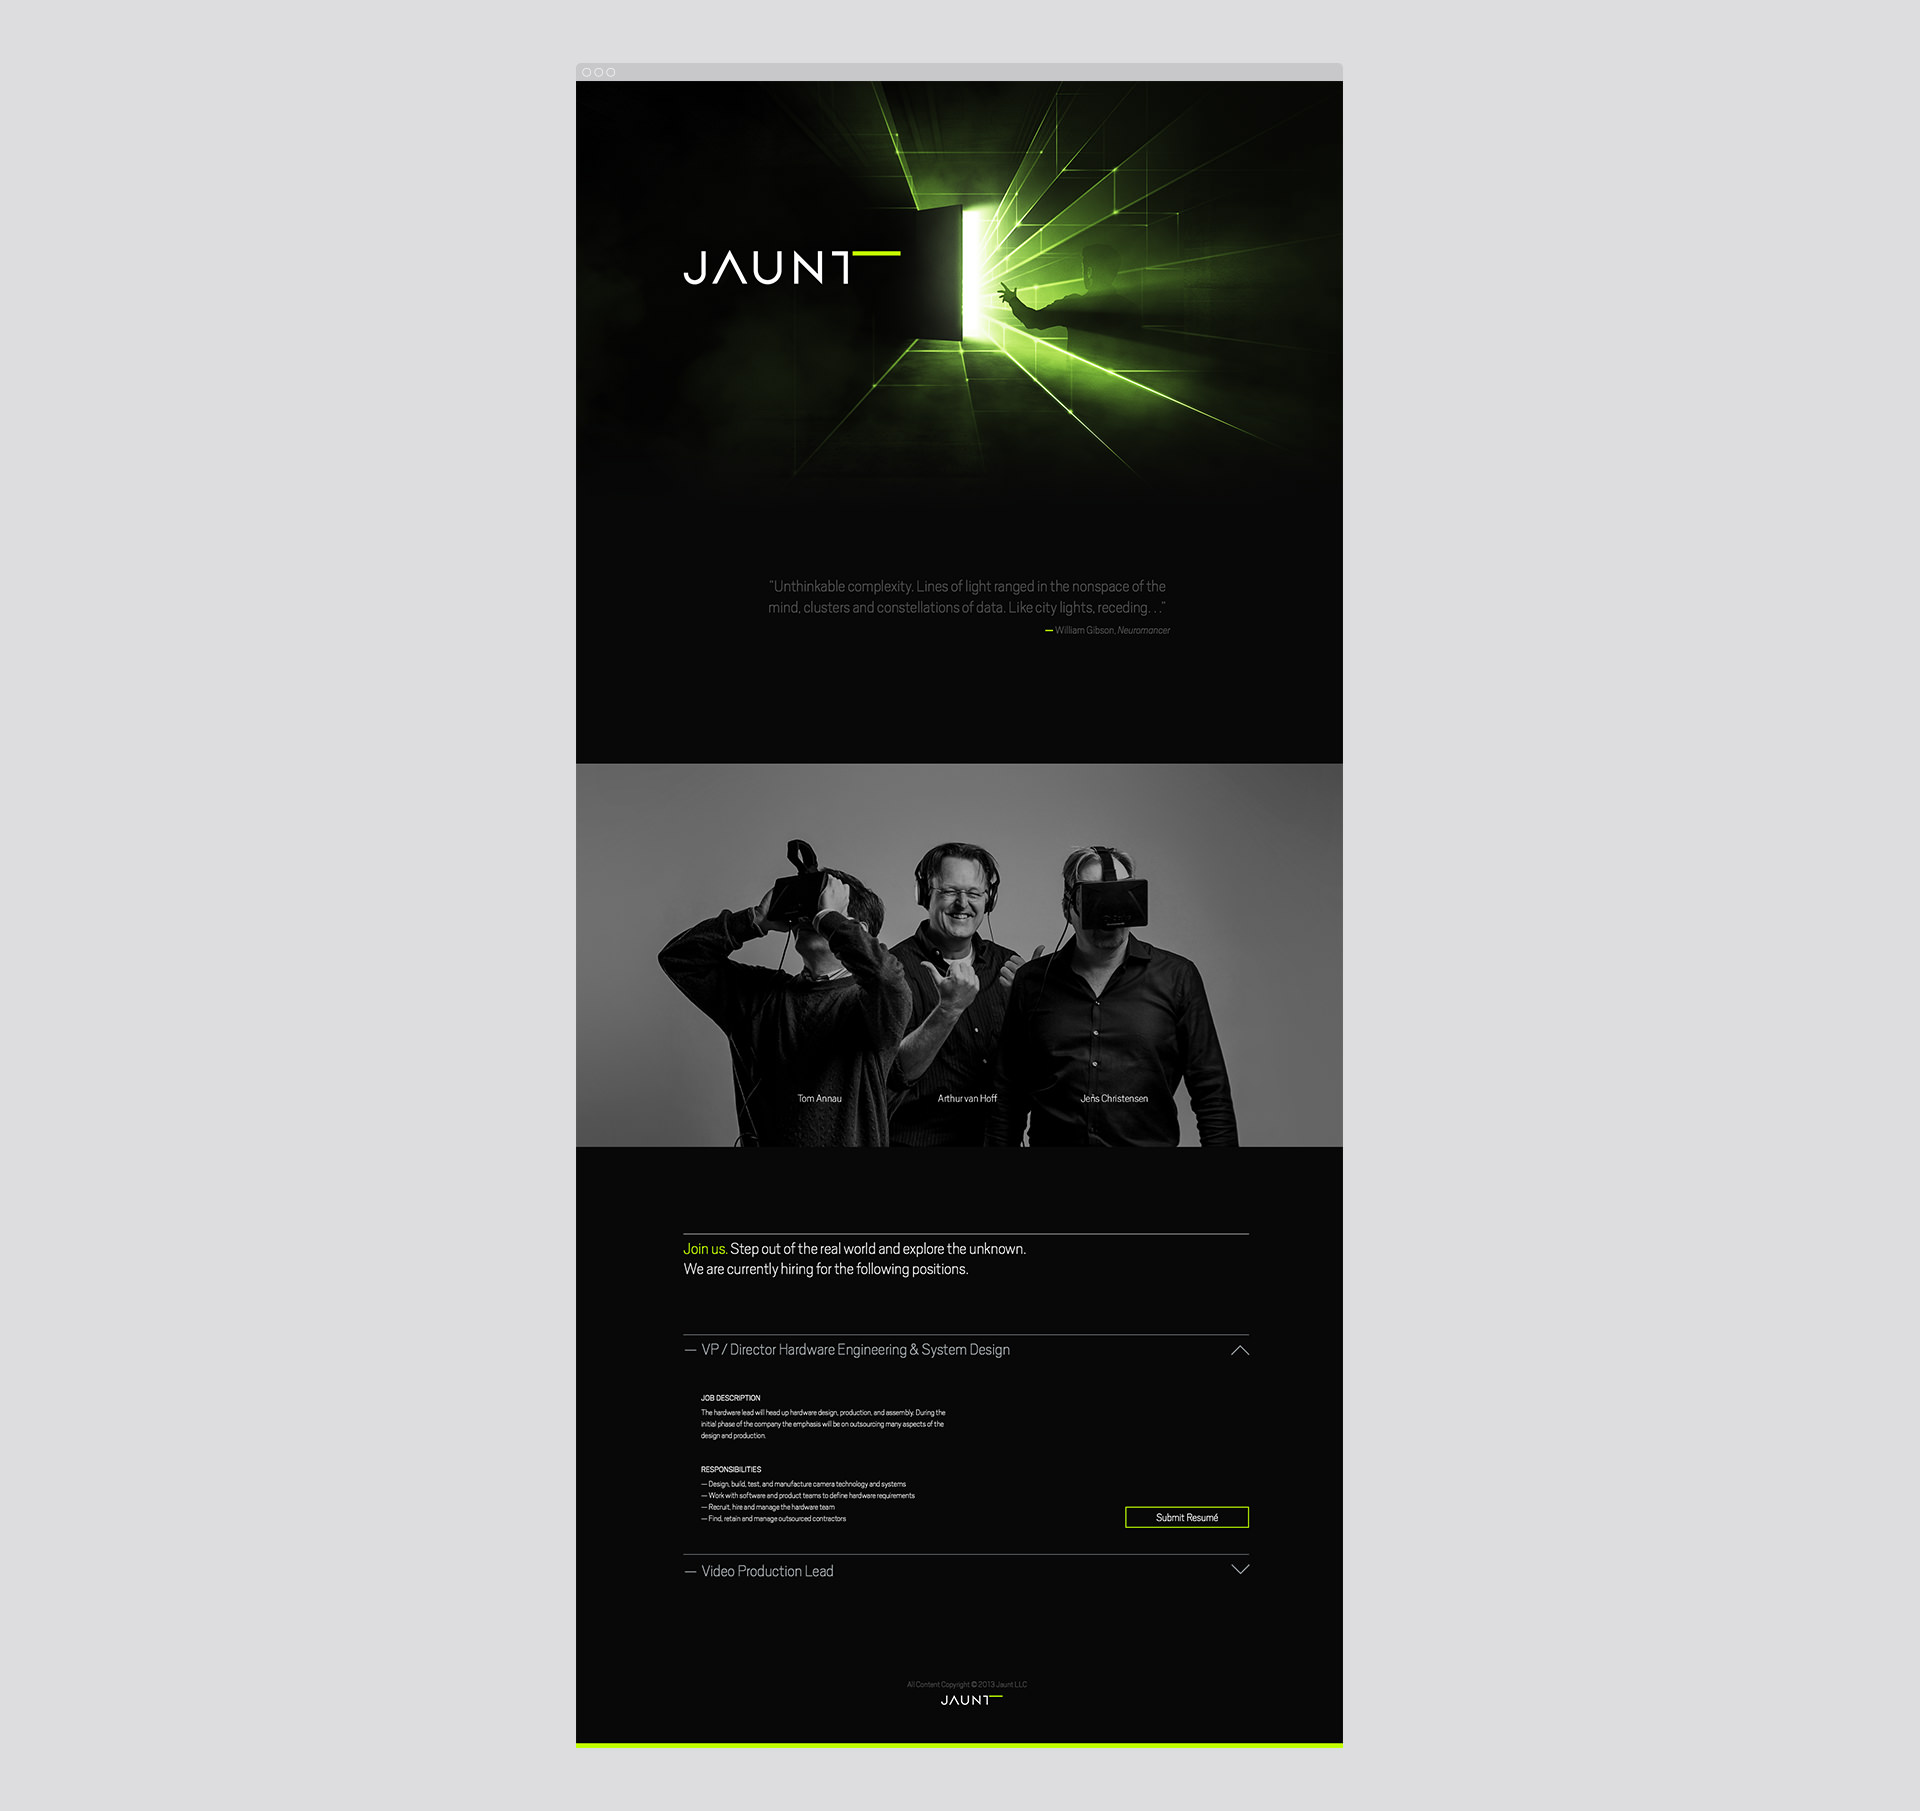 jaunt_web_full_2